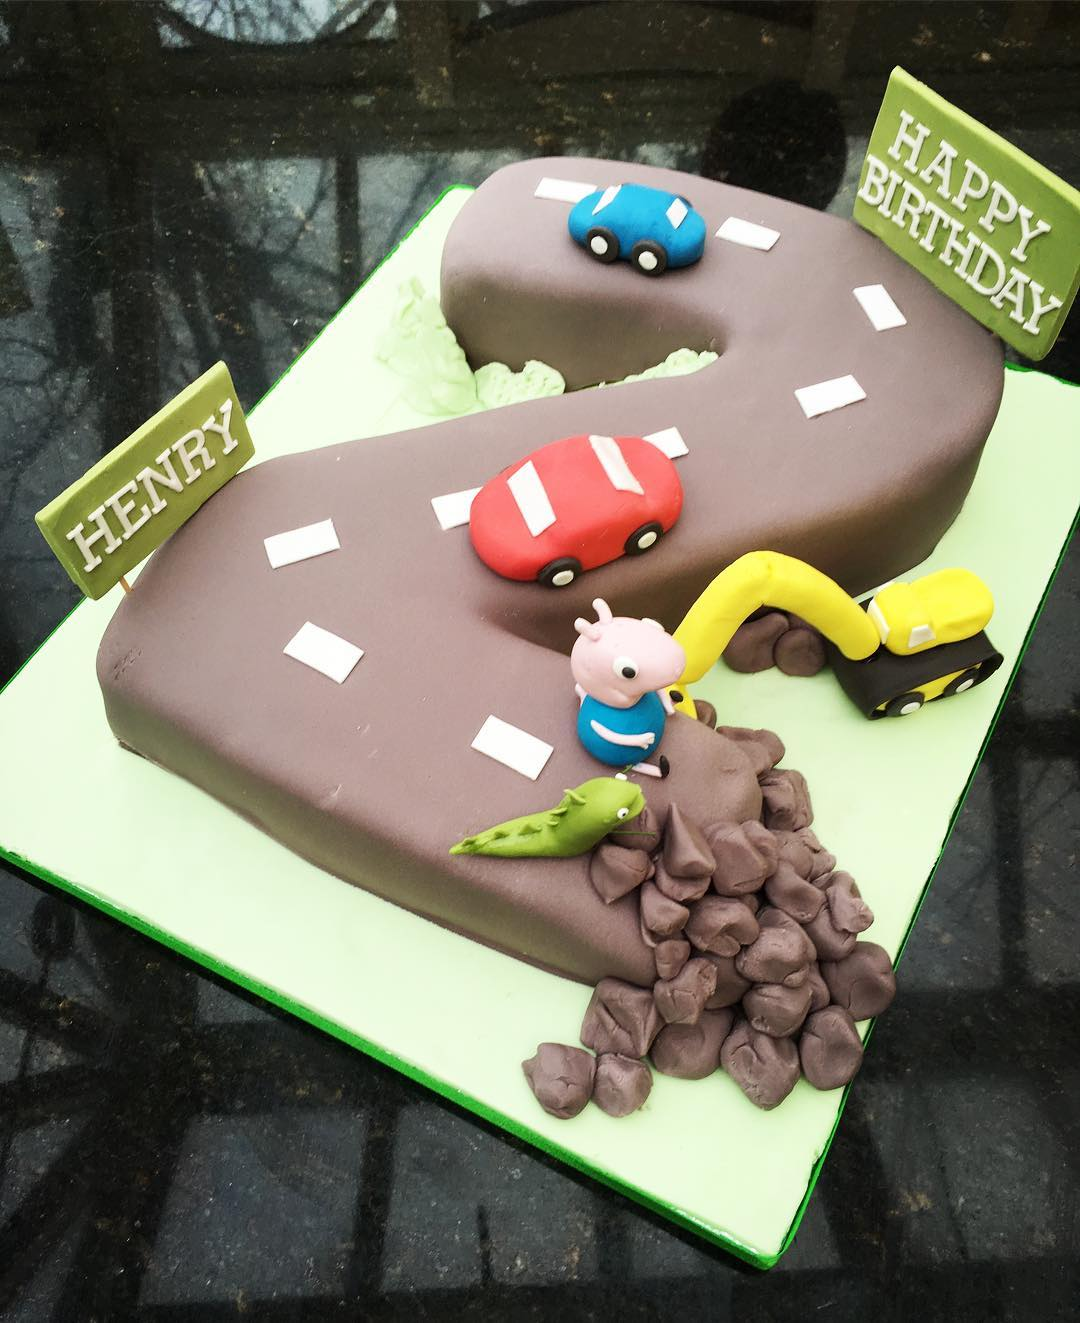 No. 2 Road, Digger, and George Pig Cake.